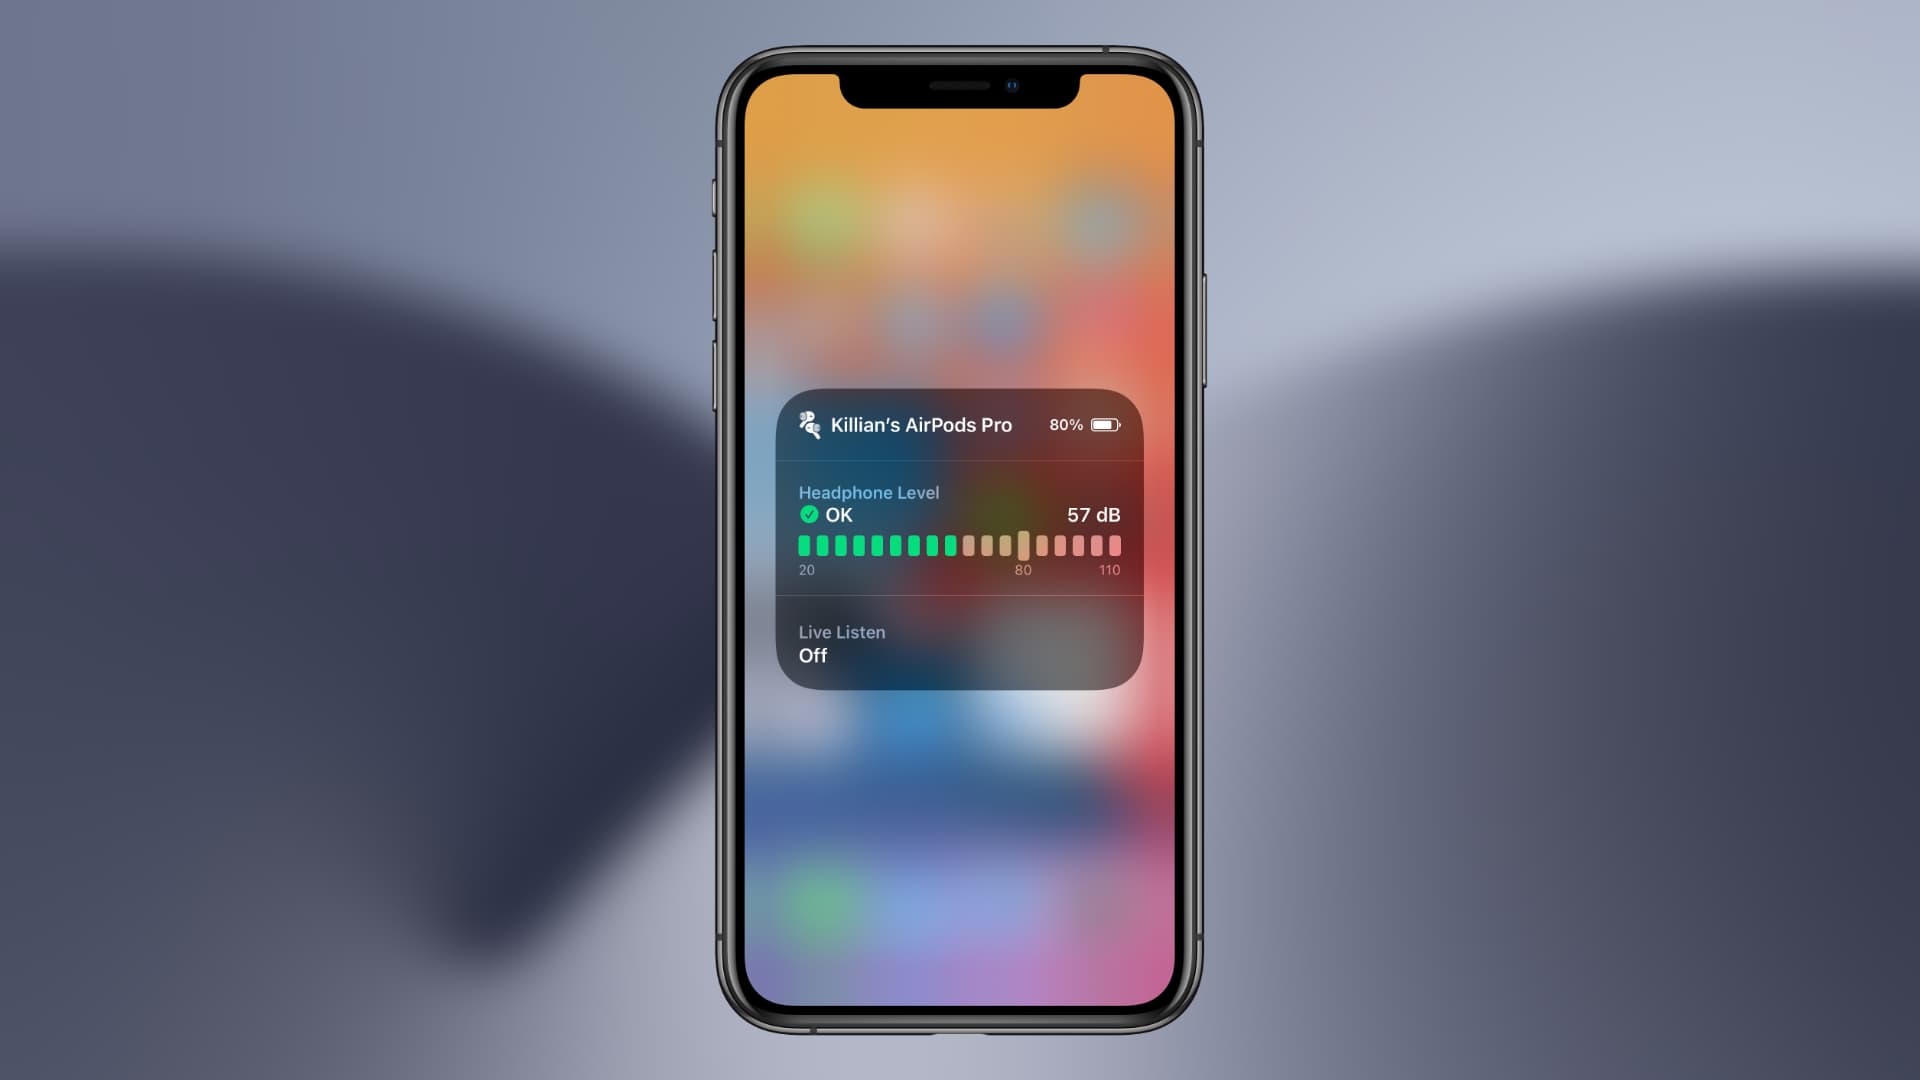 AirPods measuring noise levels in iOS 14